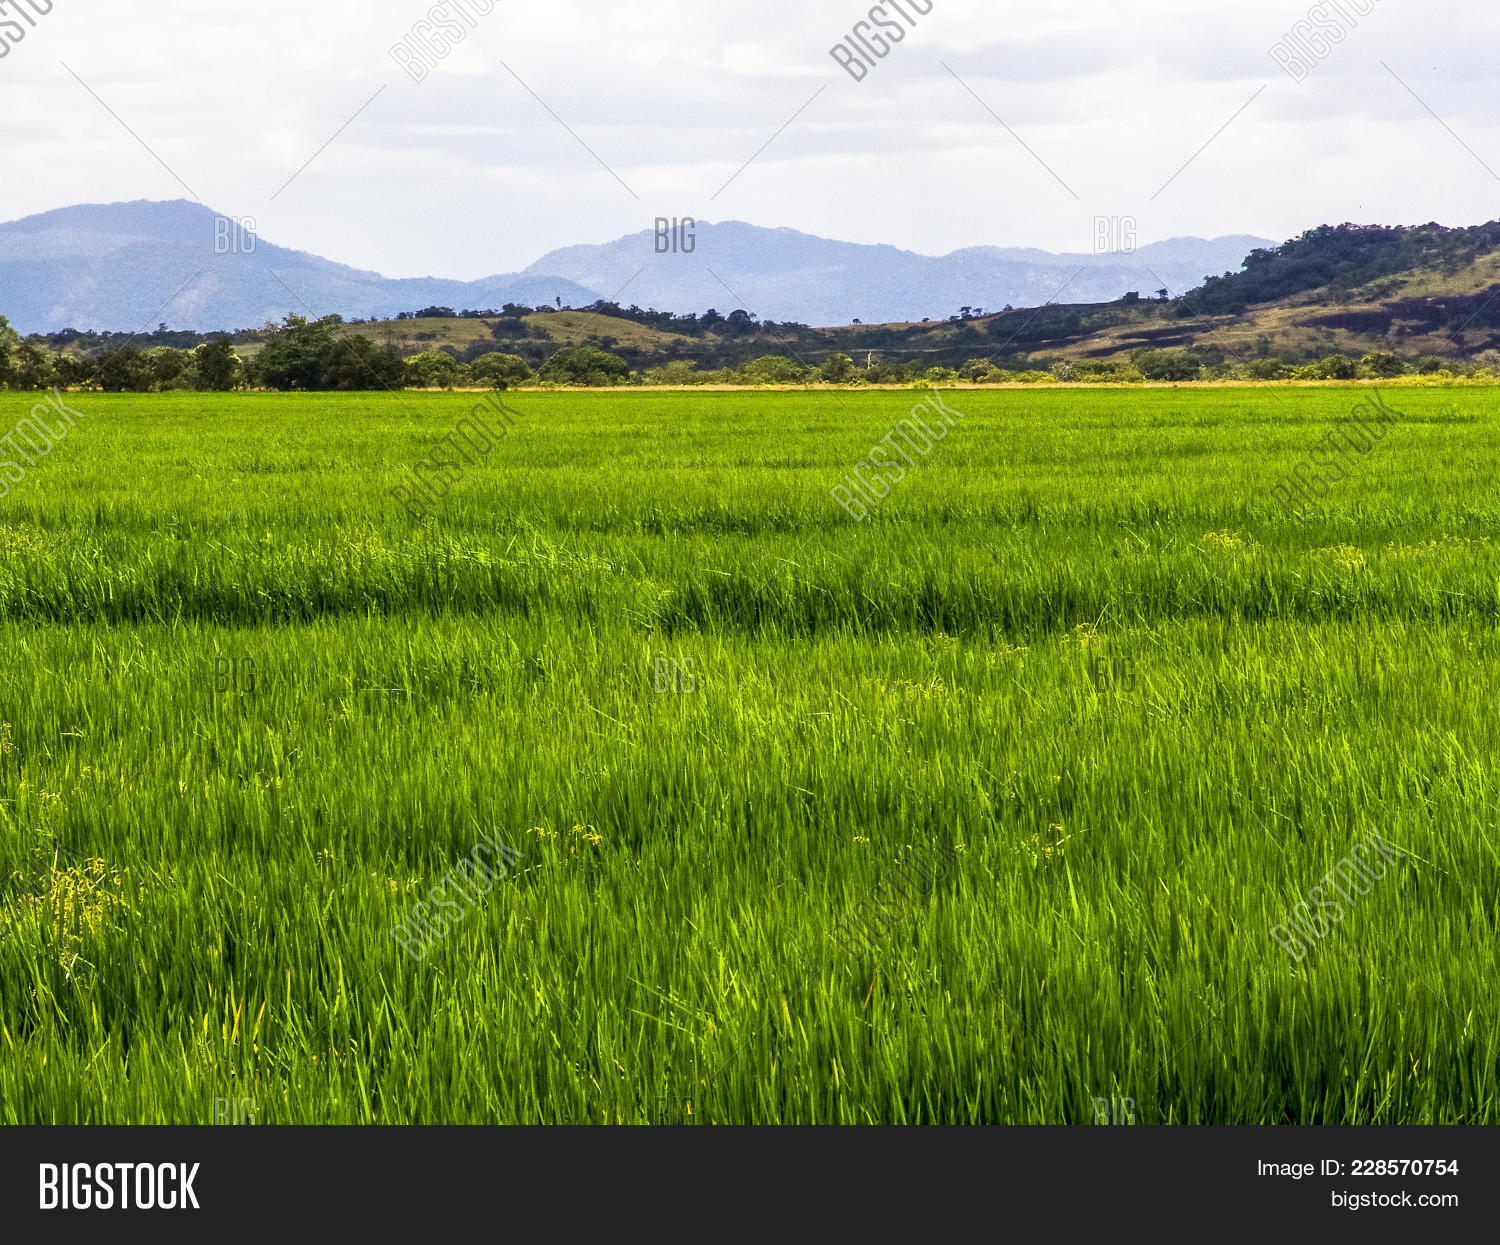 Agricultural rice field in a farm powerpoint template agricultural y toneelgroepblik Gallery